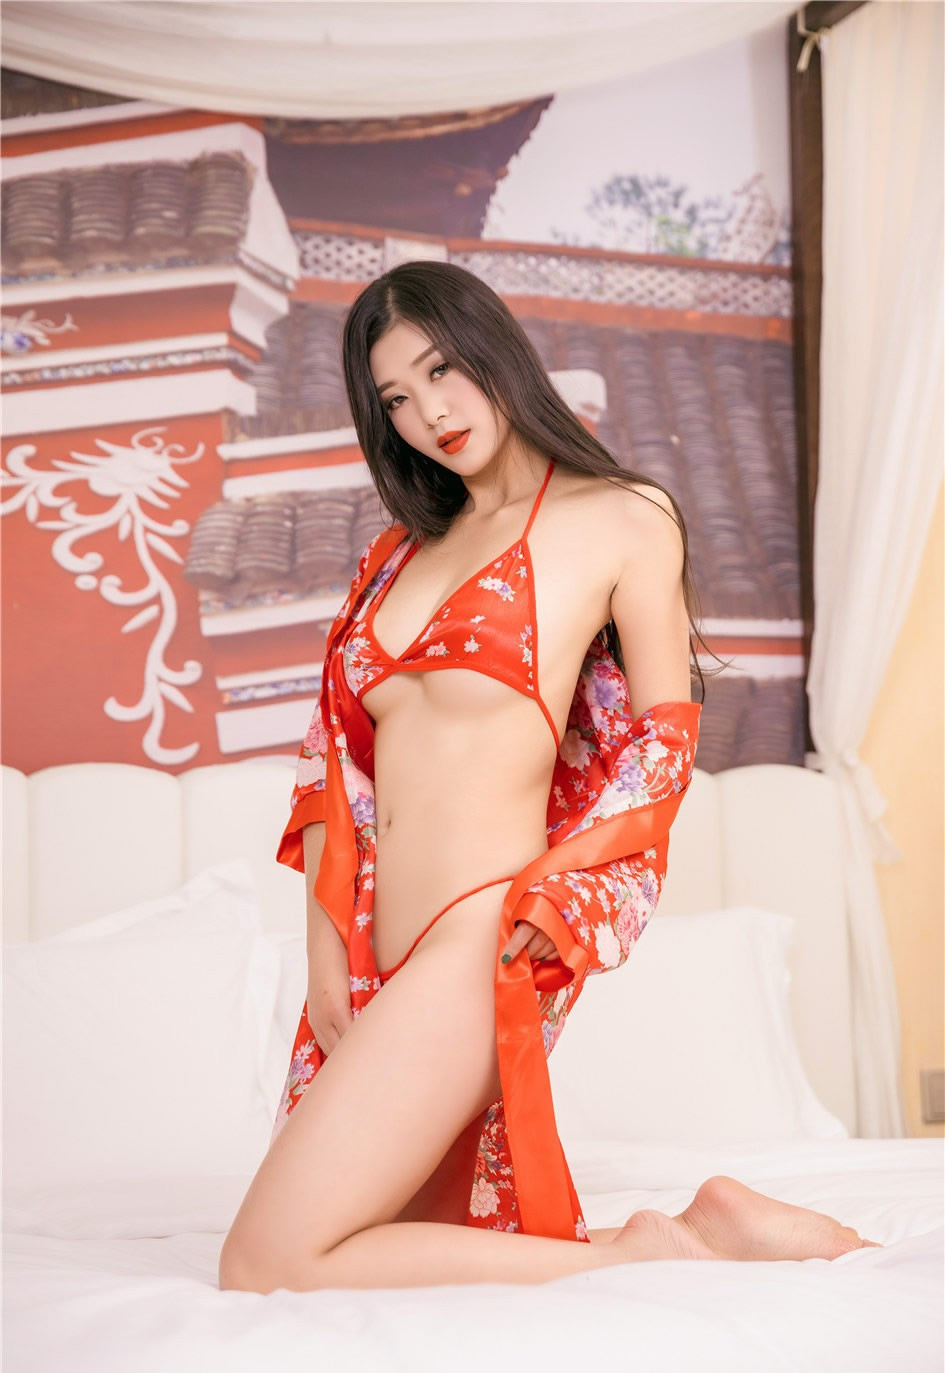 ❤❤Come To Your Place ♠♠ CALL ME ☎202-780-1448☎ ♠♠ Busty Sexy Asian Cherry ♠♠❤❤